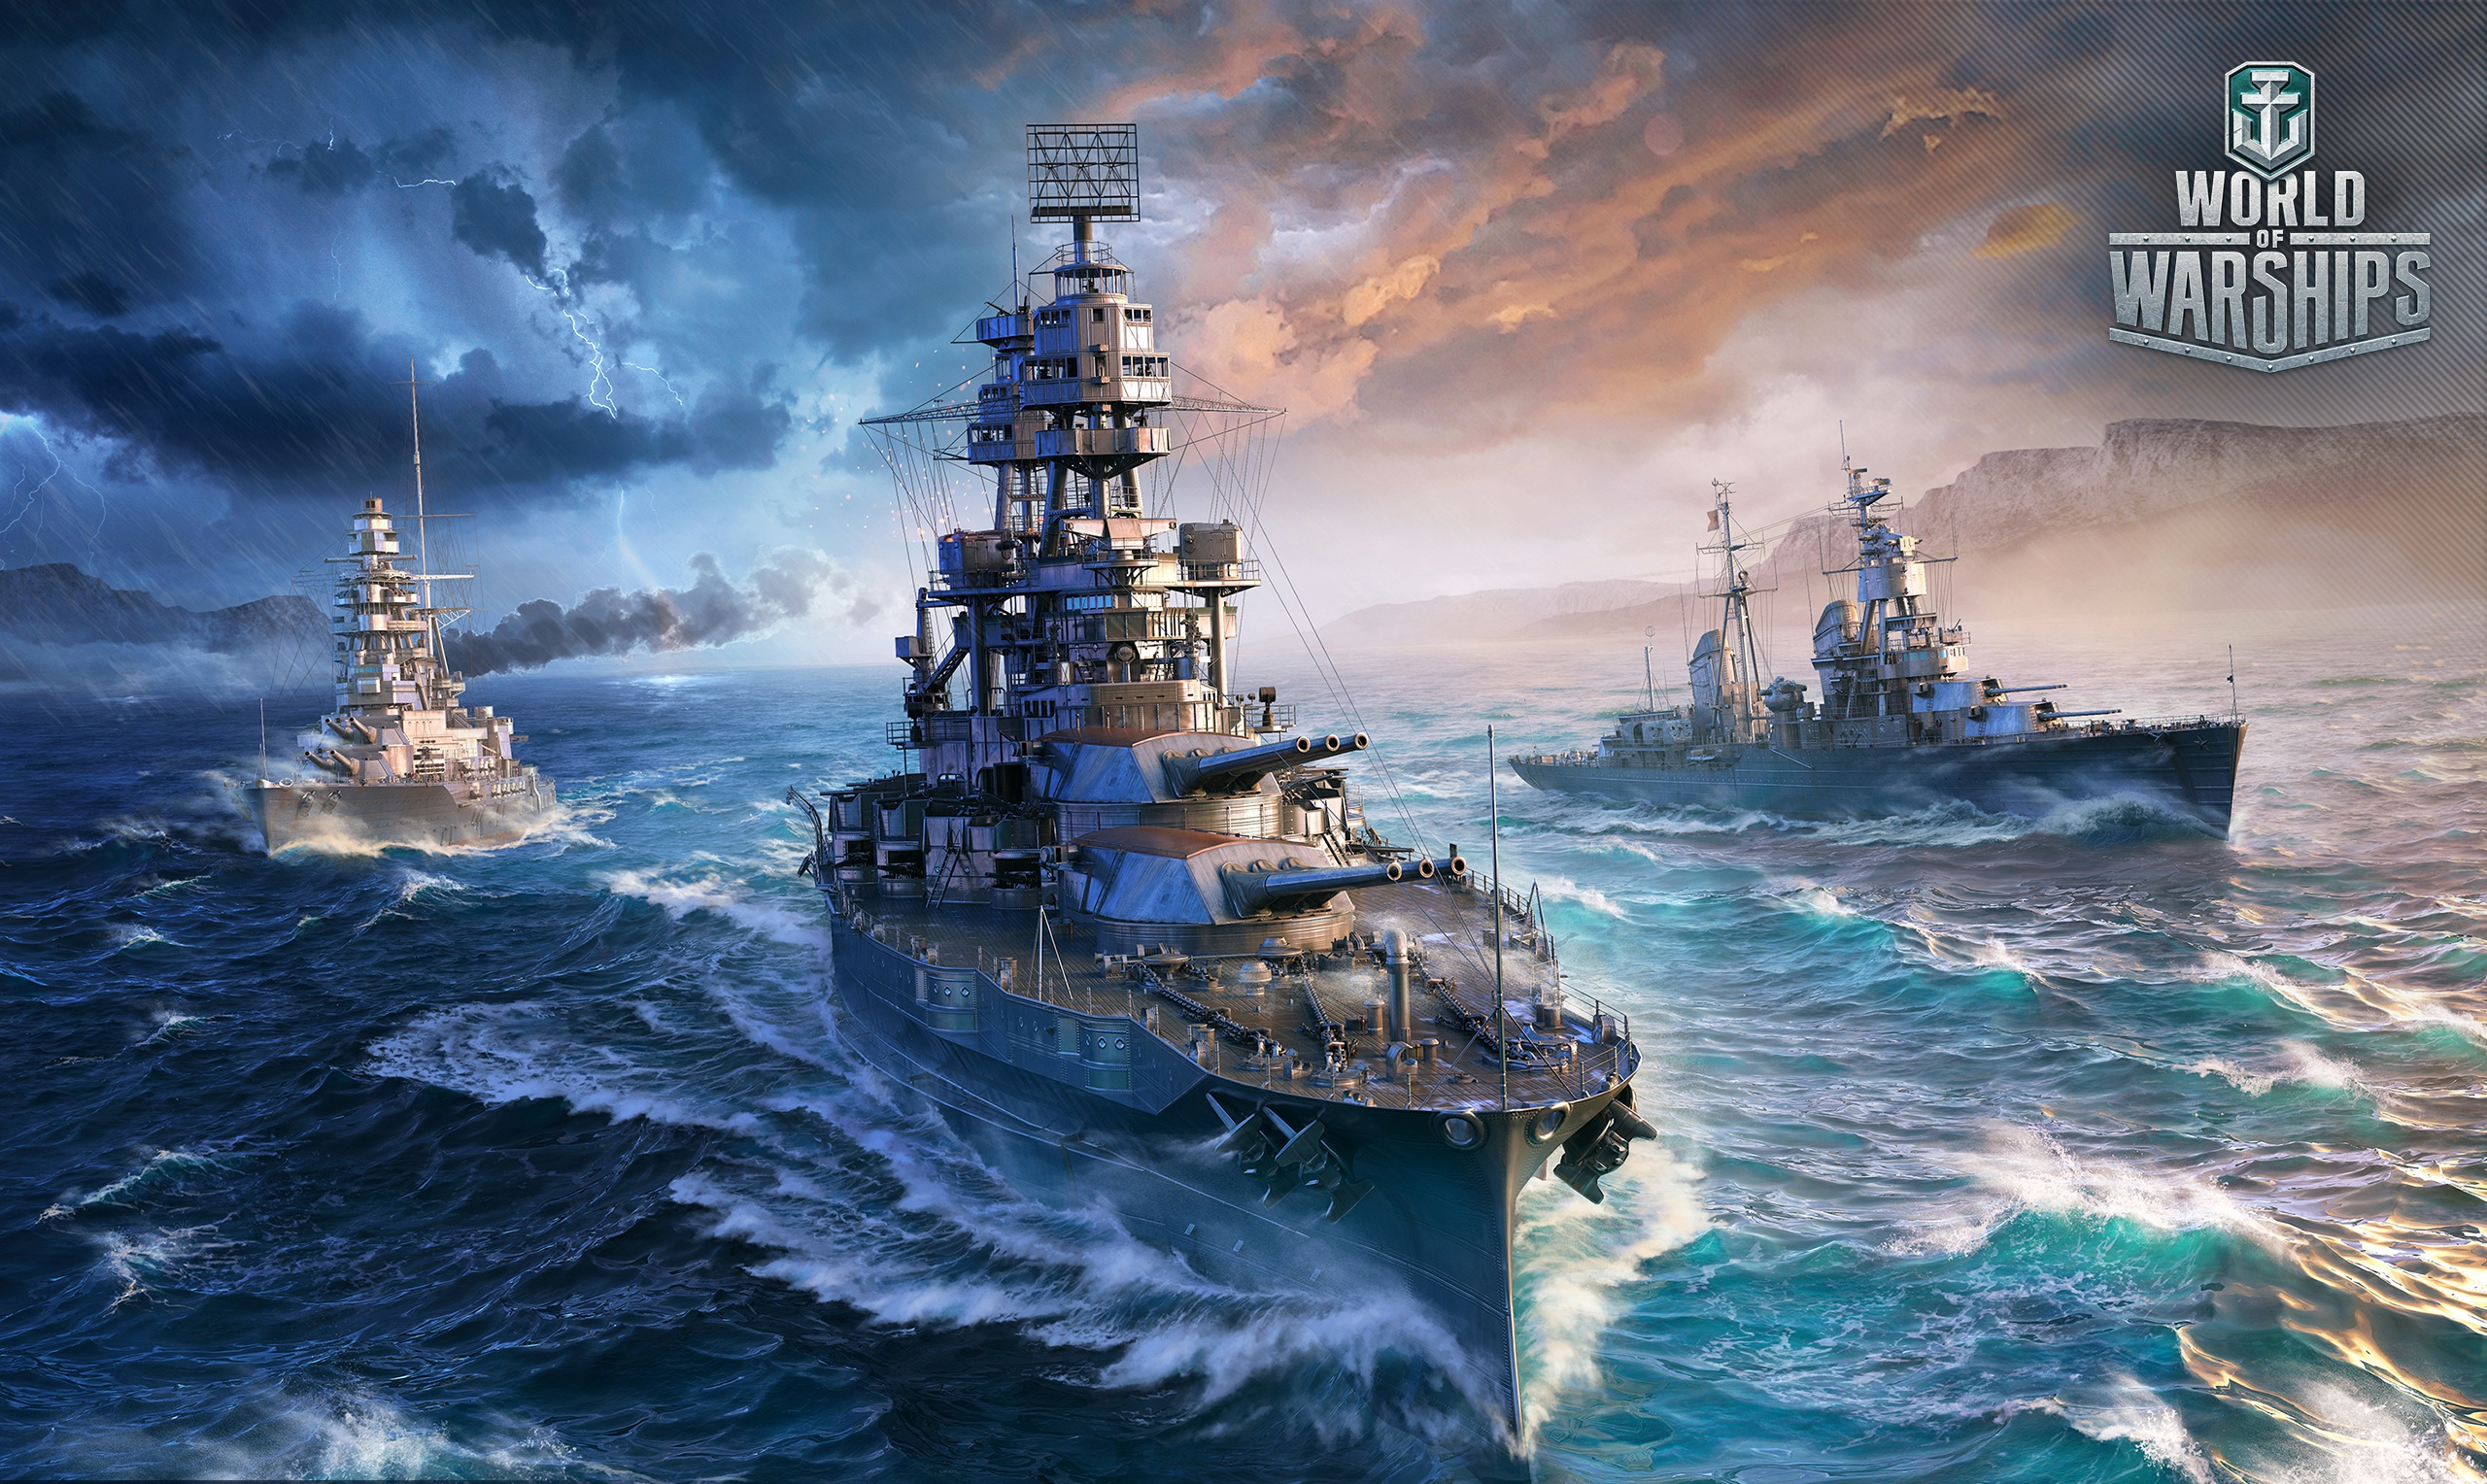 World Of Warships Wallpaper: World Of Warships 2017, HD Games, 4k Wallpapers, Images